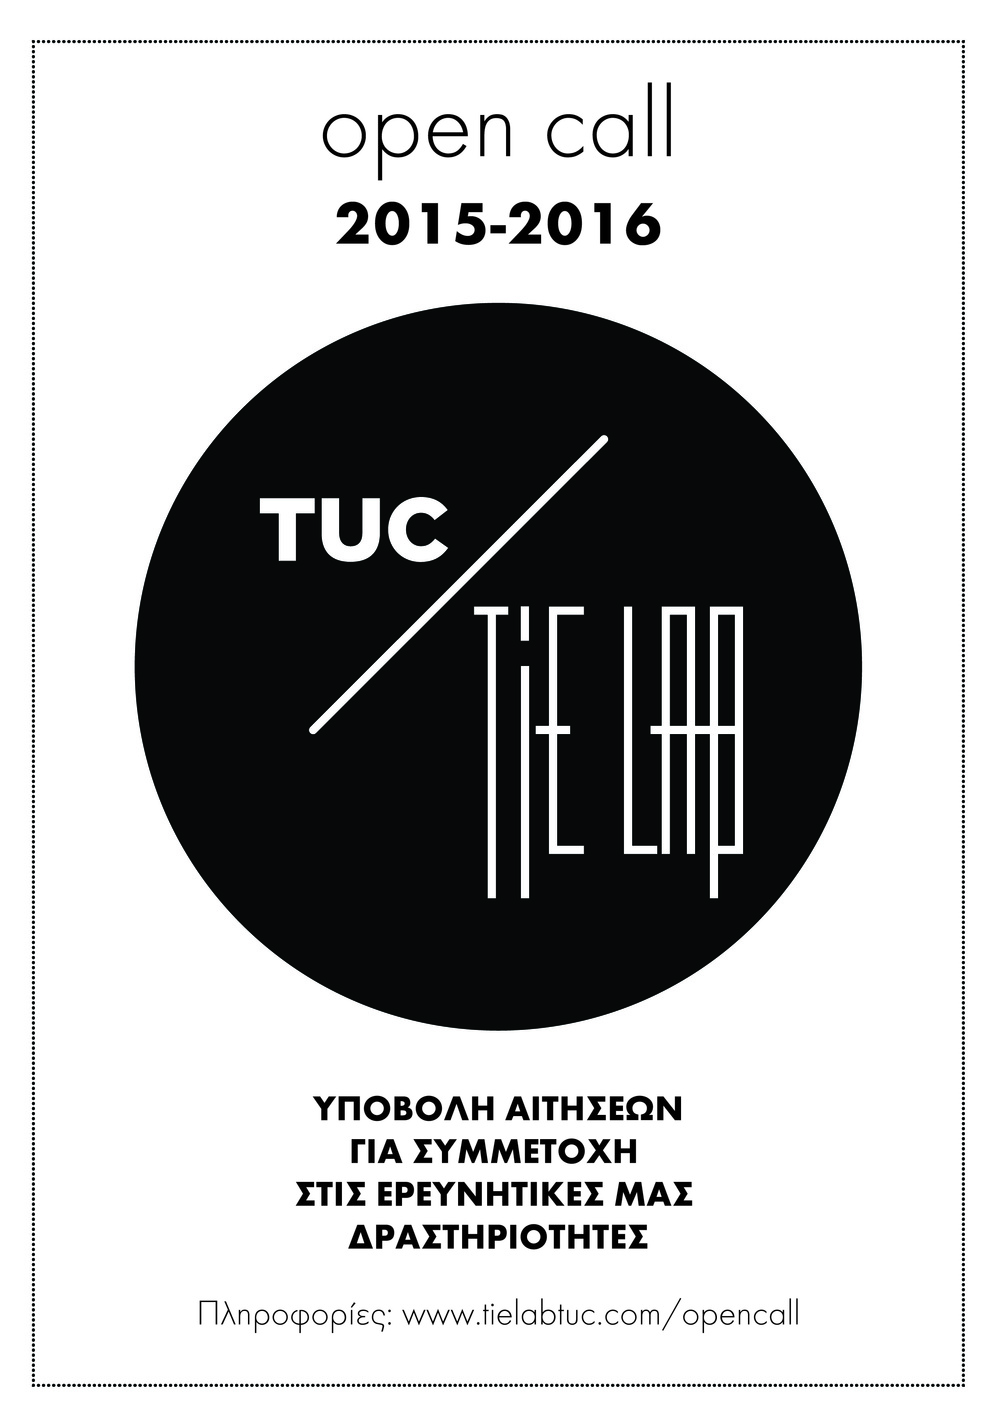 TUC_TIE_Lab_OpenCall_2015-16.jpg